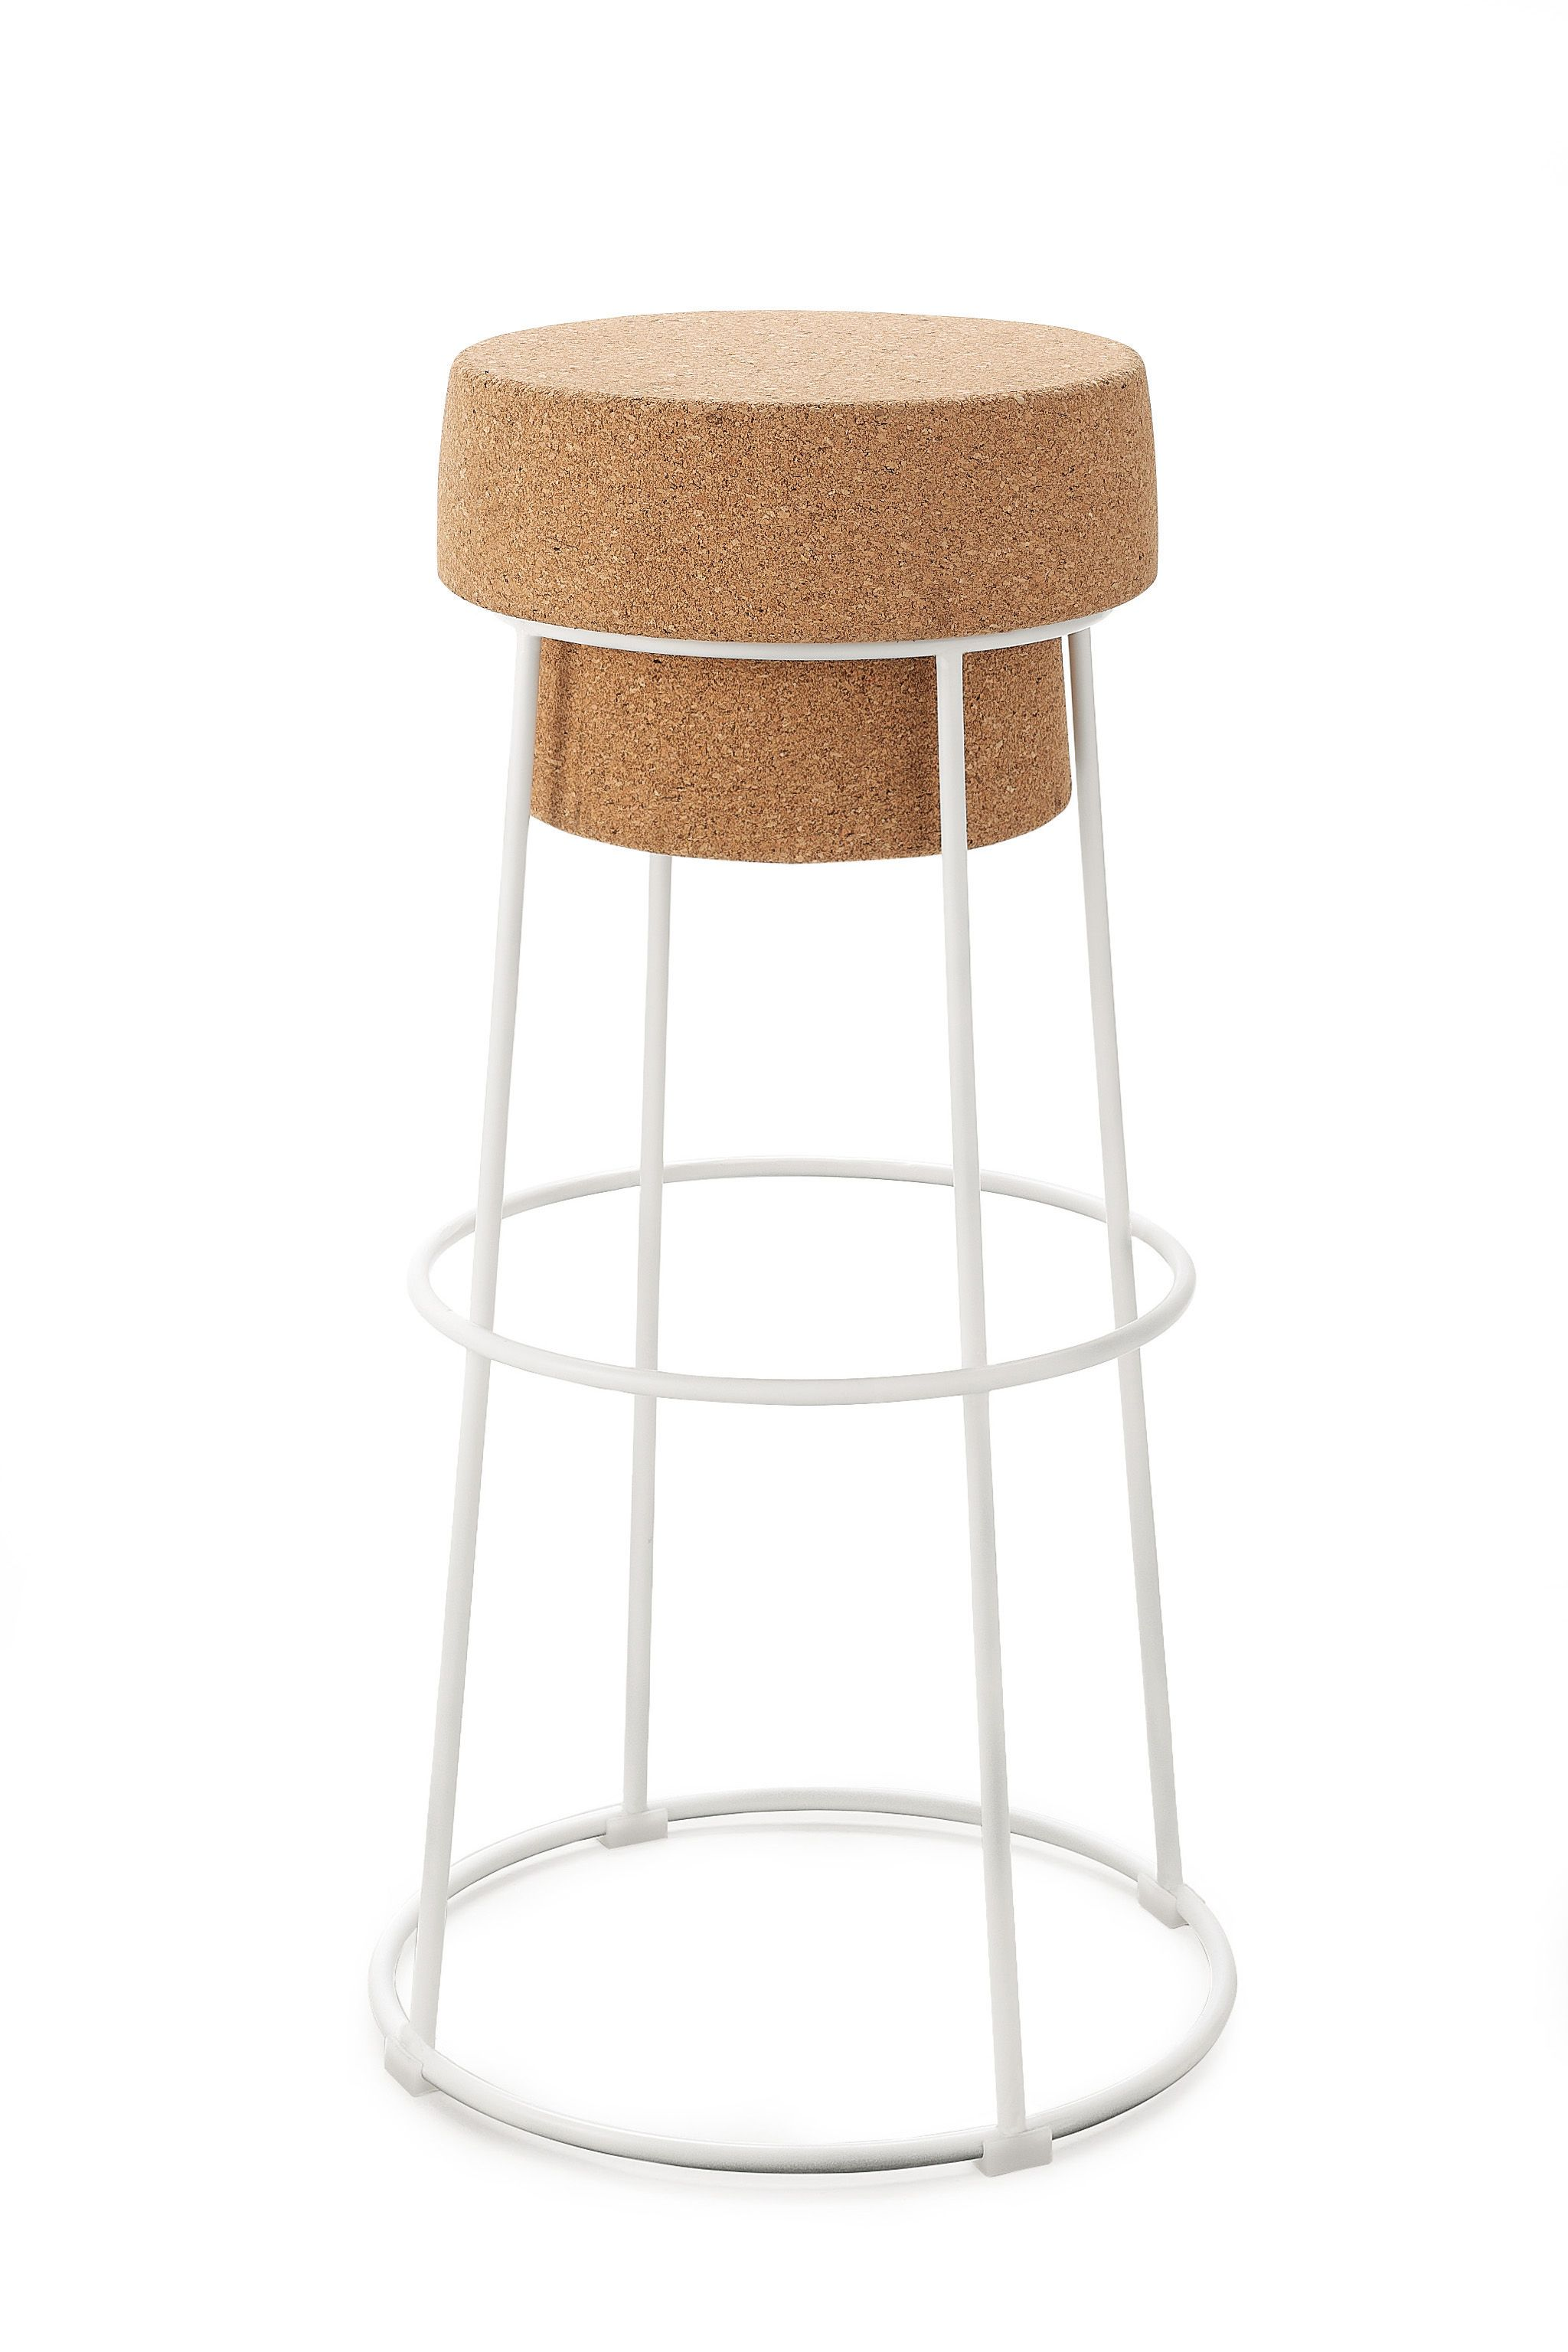 domitalia kitchen tables and bar stools. no need to pop bottles when you have the bouchon chair. counter stools26 bar domitalia kitchen tables and stools